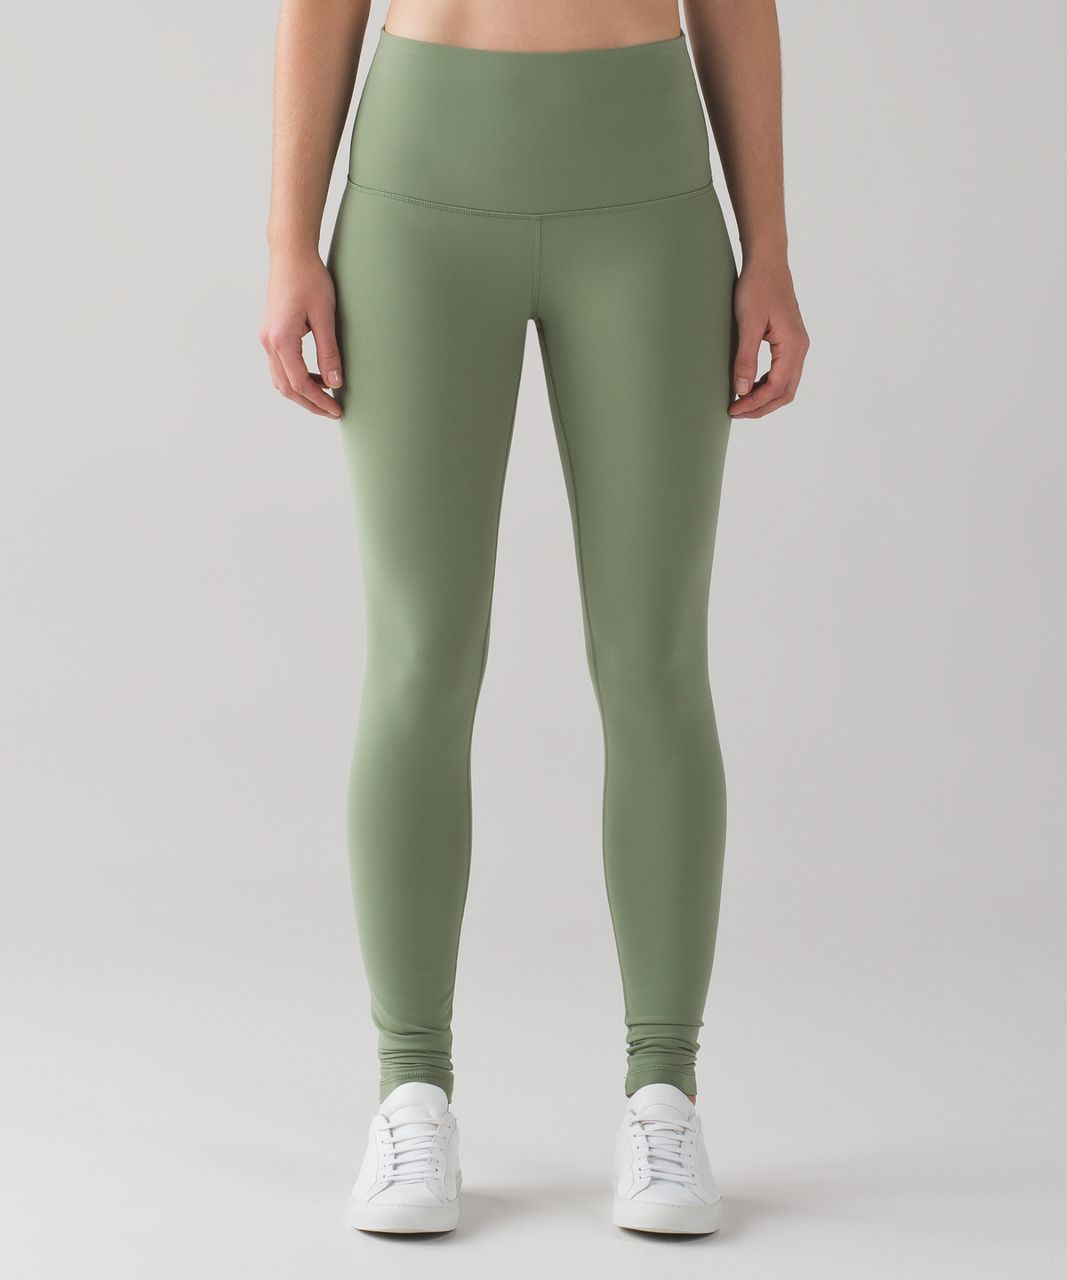 Lululemon Wunder Under Pant (Hi-Rise) (Full-On Luon) - Desert Olive